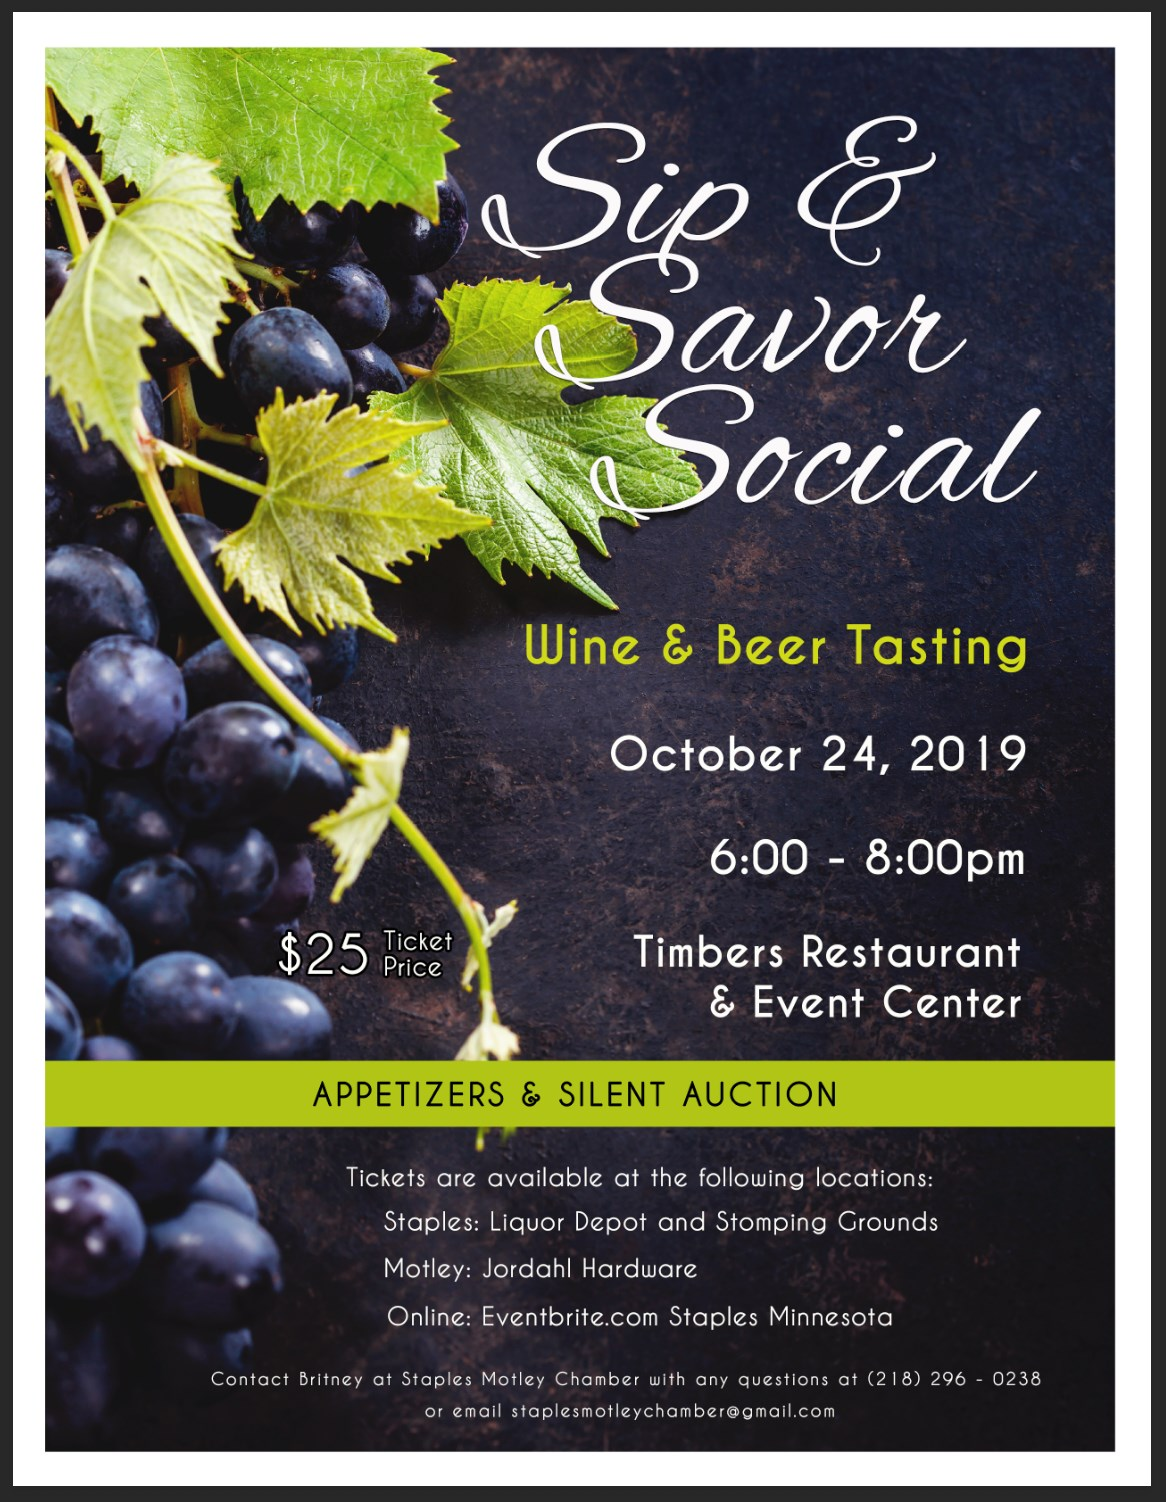 Sip and Savor event poster 2019